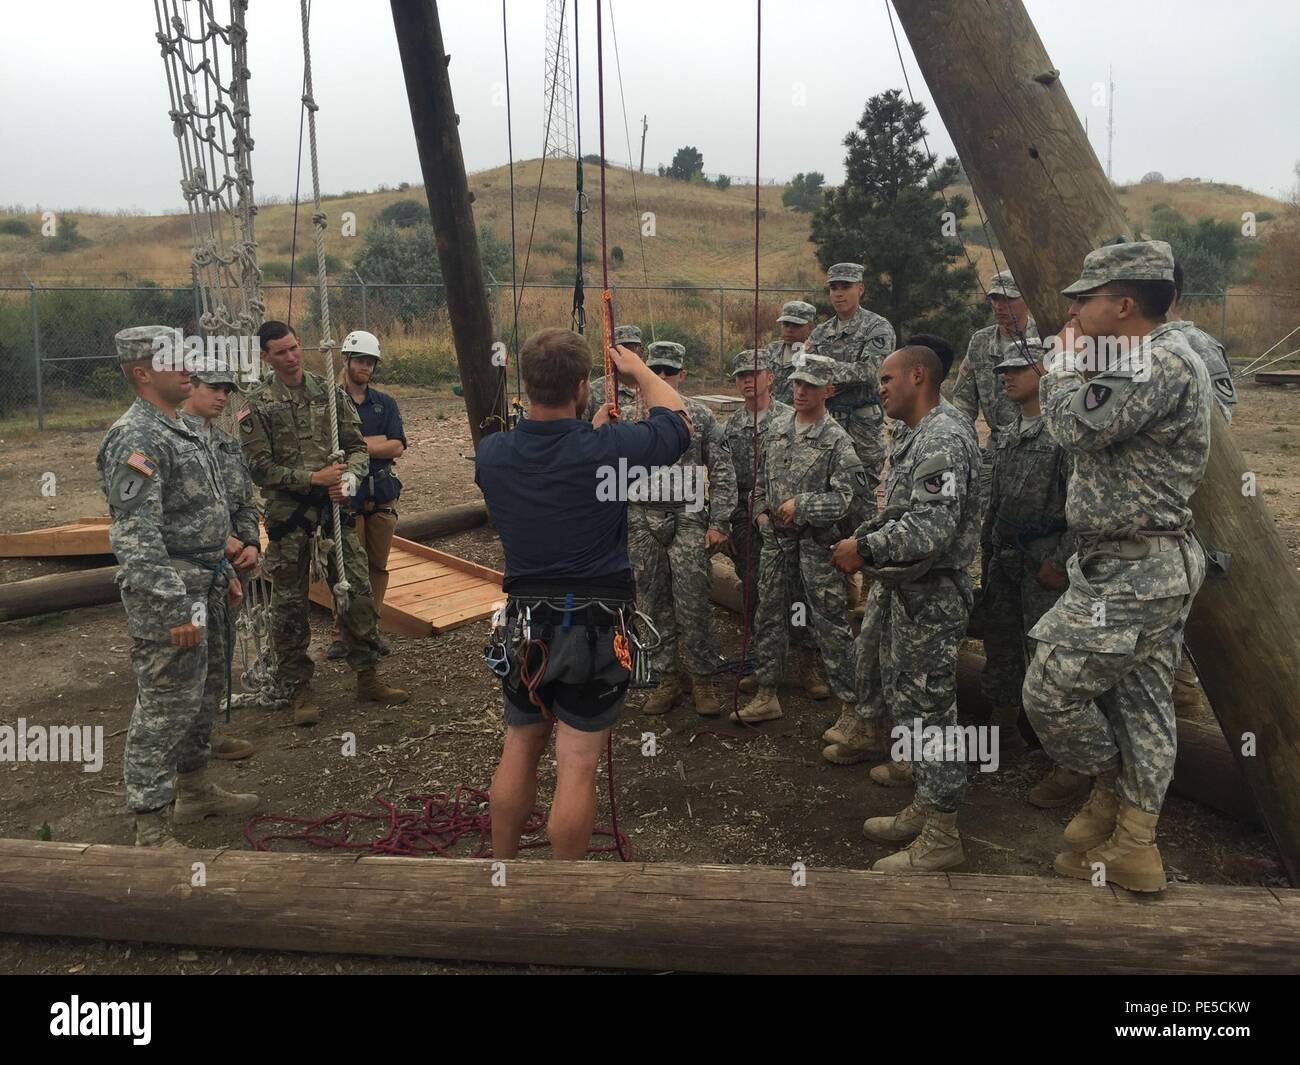 united states army soldiers with 3rd platoon, 62nd engineer company